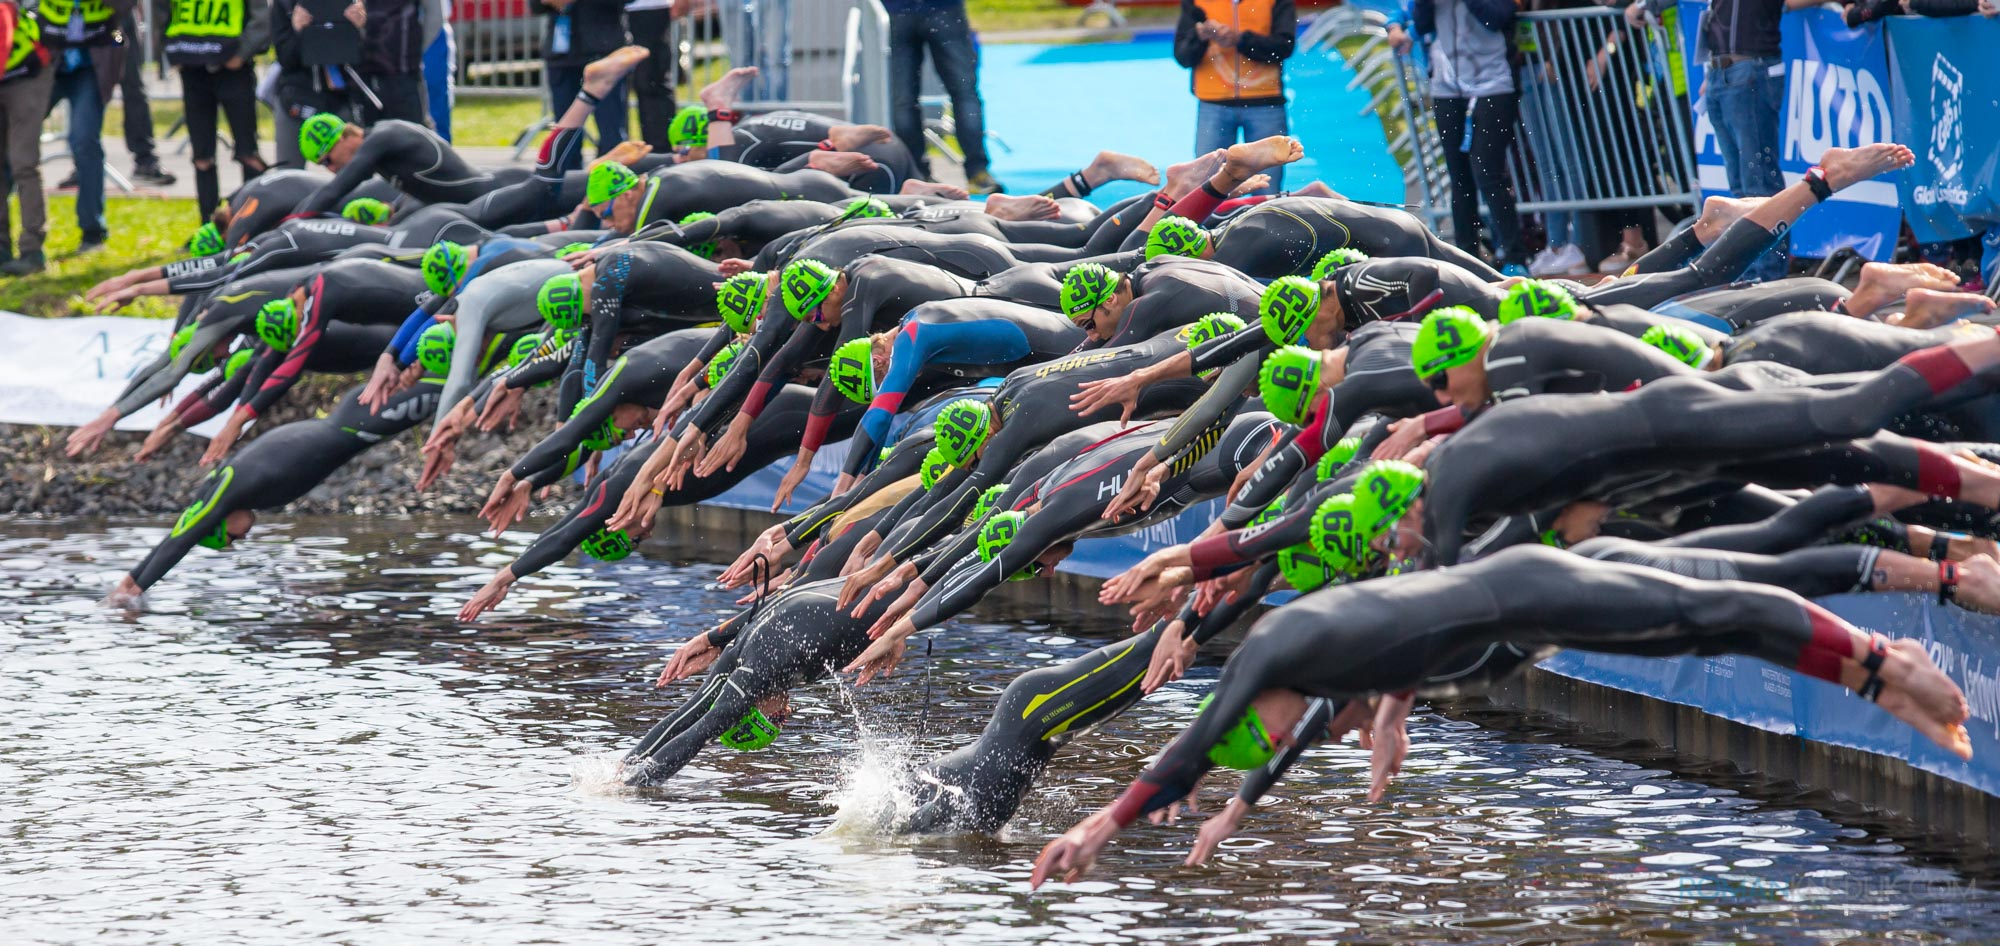 ICU_World_Cup_Triathlon_KV-2